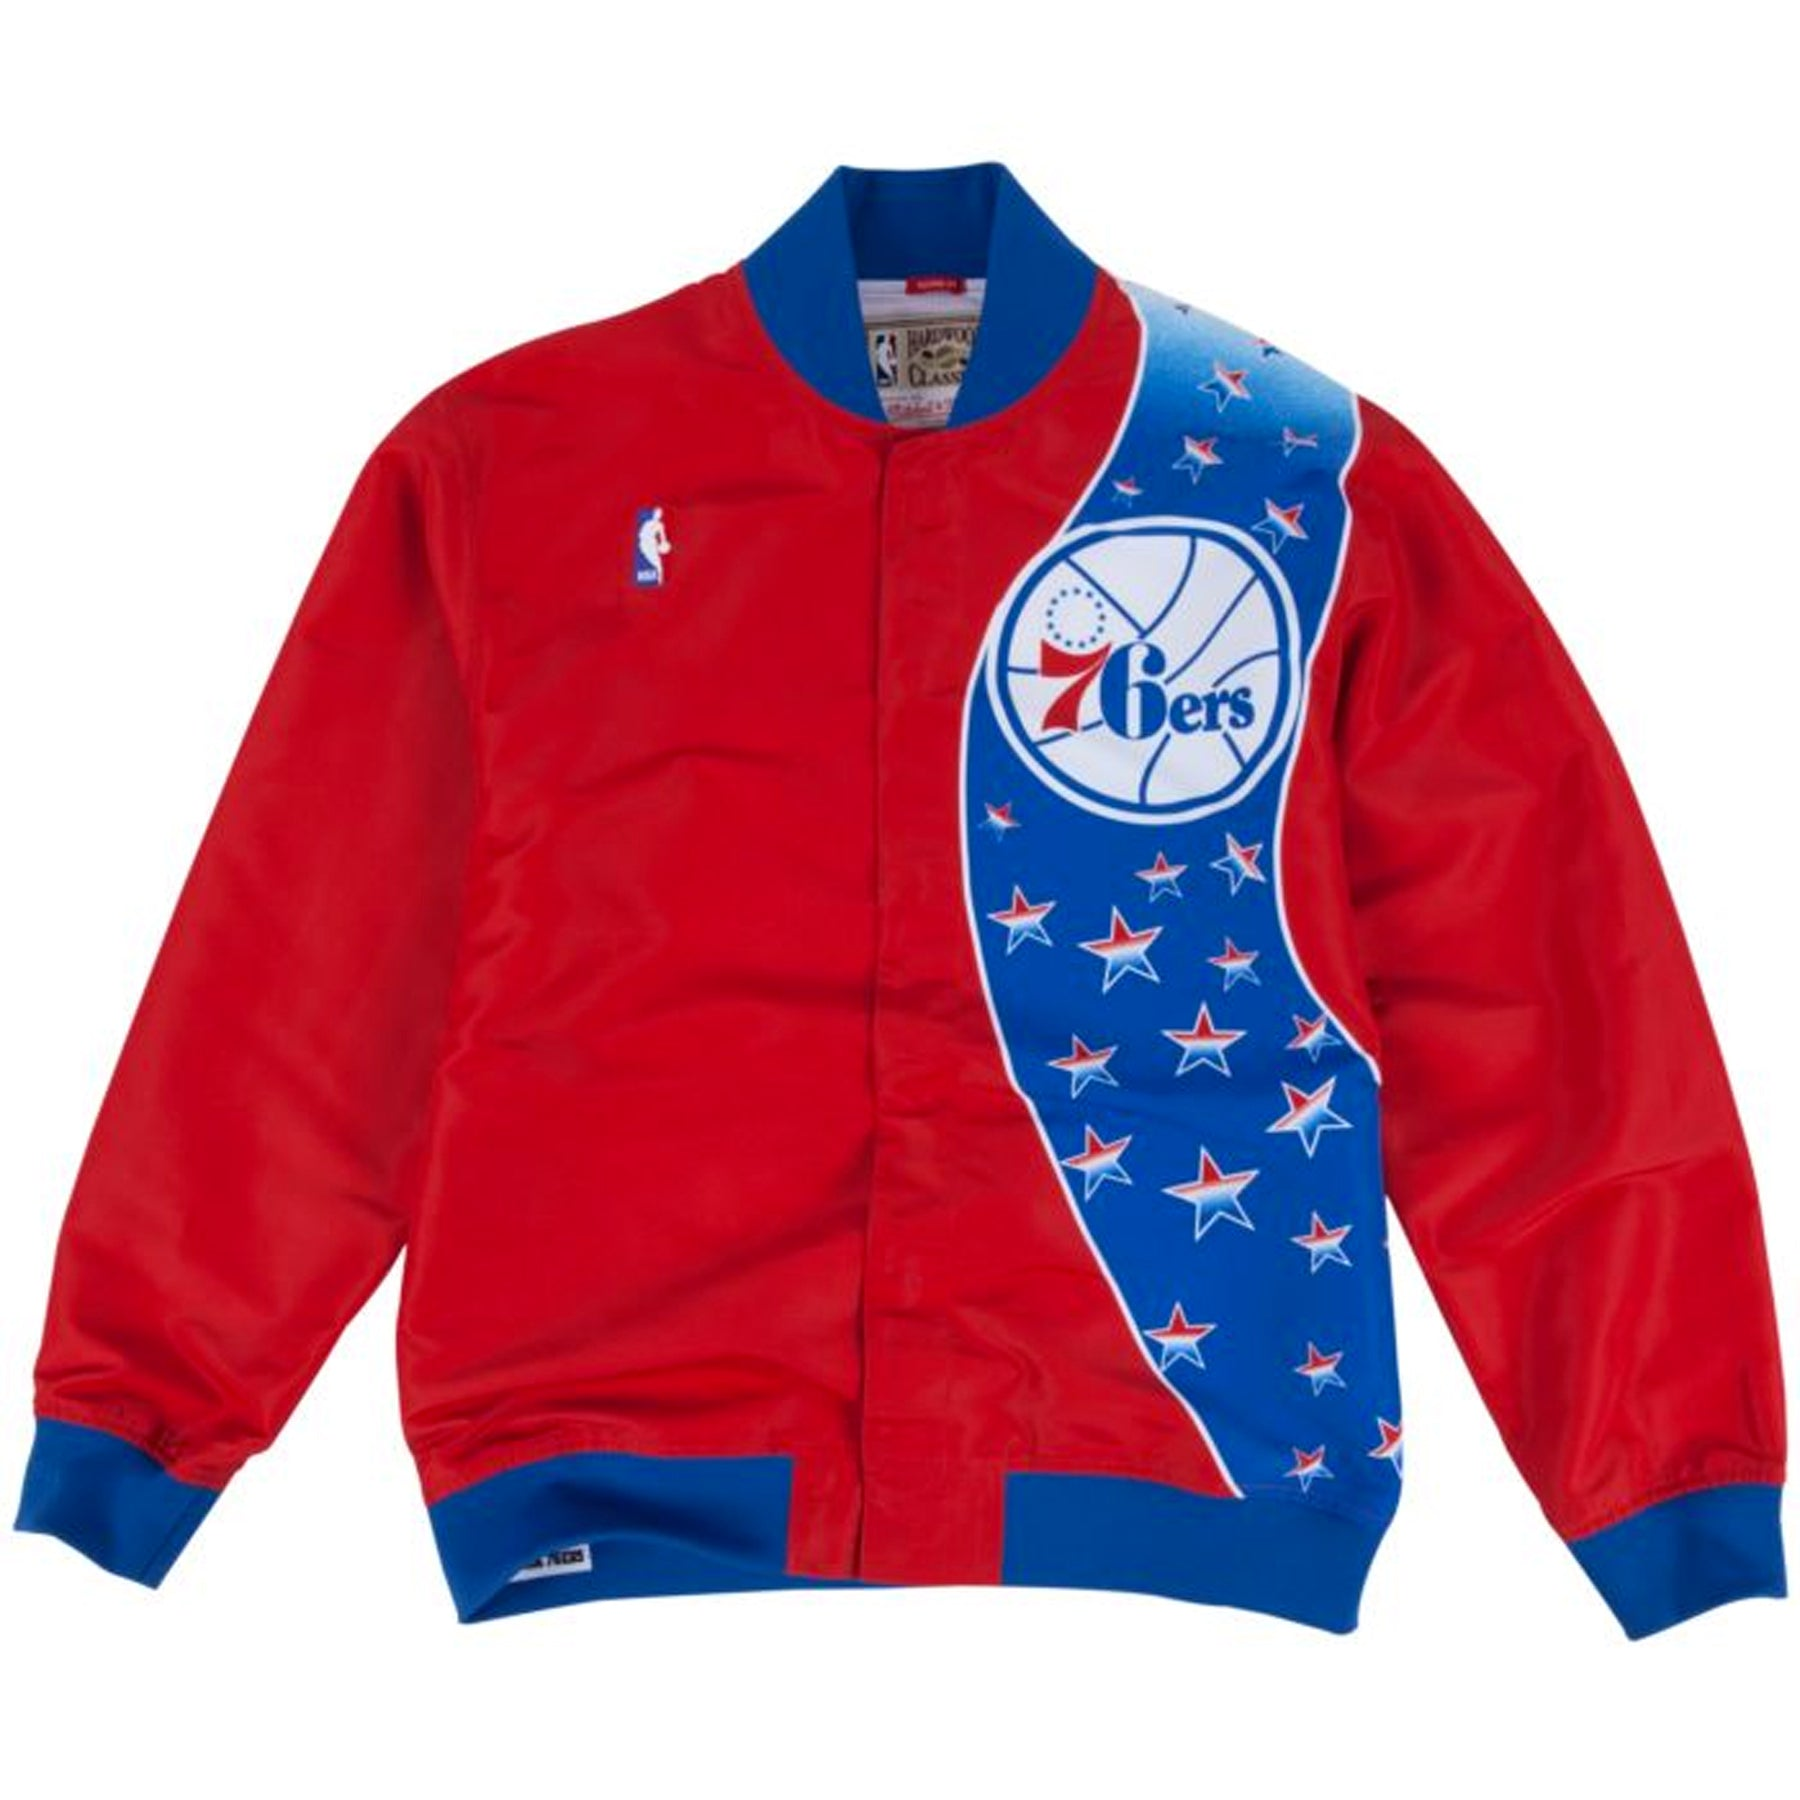 cde77278e00f this philadelphia 76ers red and blue warm up jacket from Mitchell and Ness  is a must